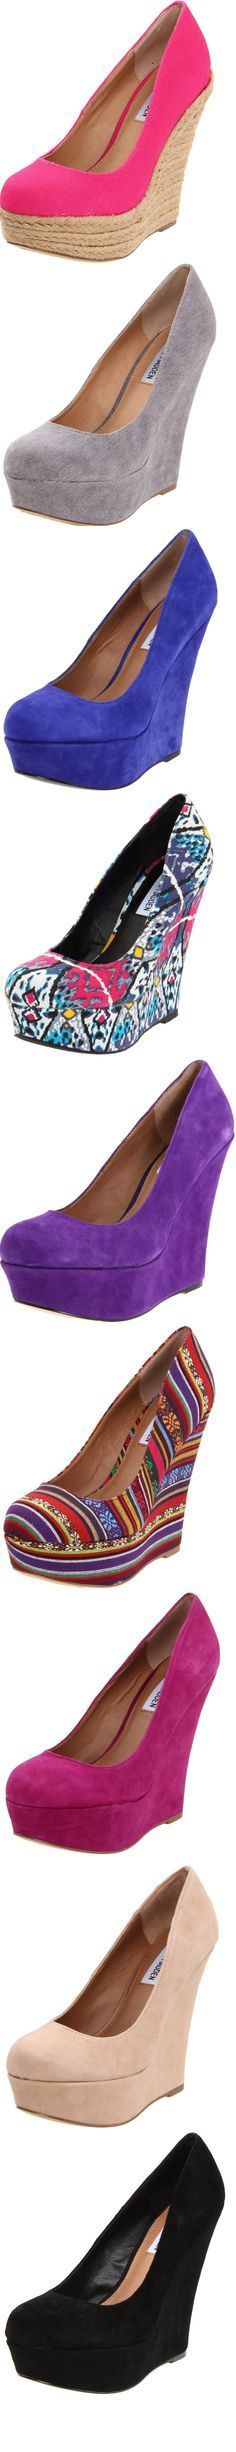 steve madden pammy wedges